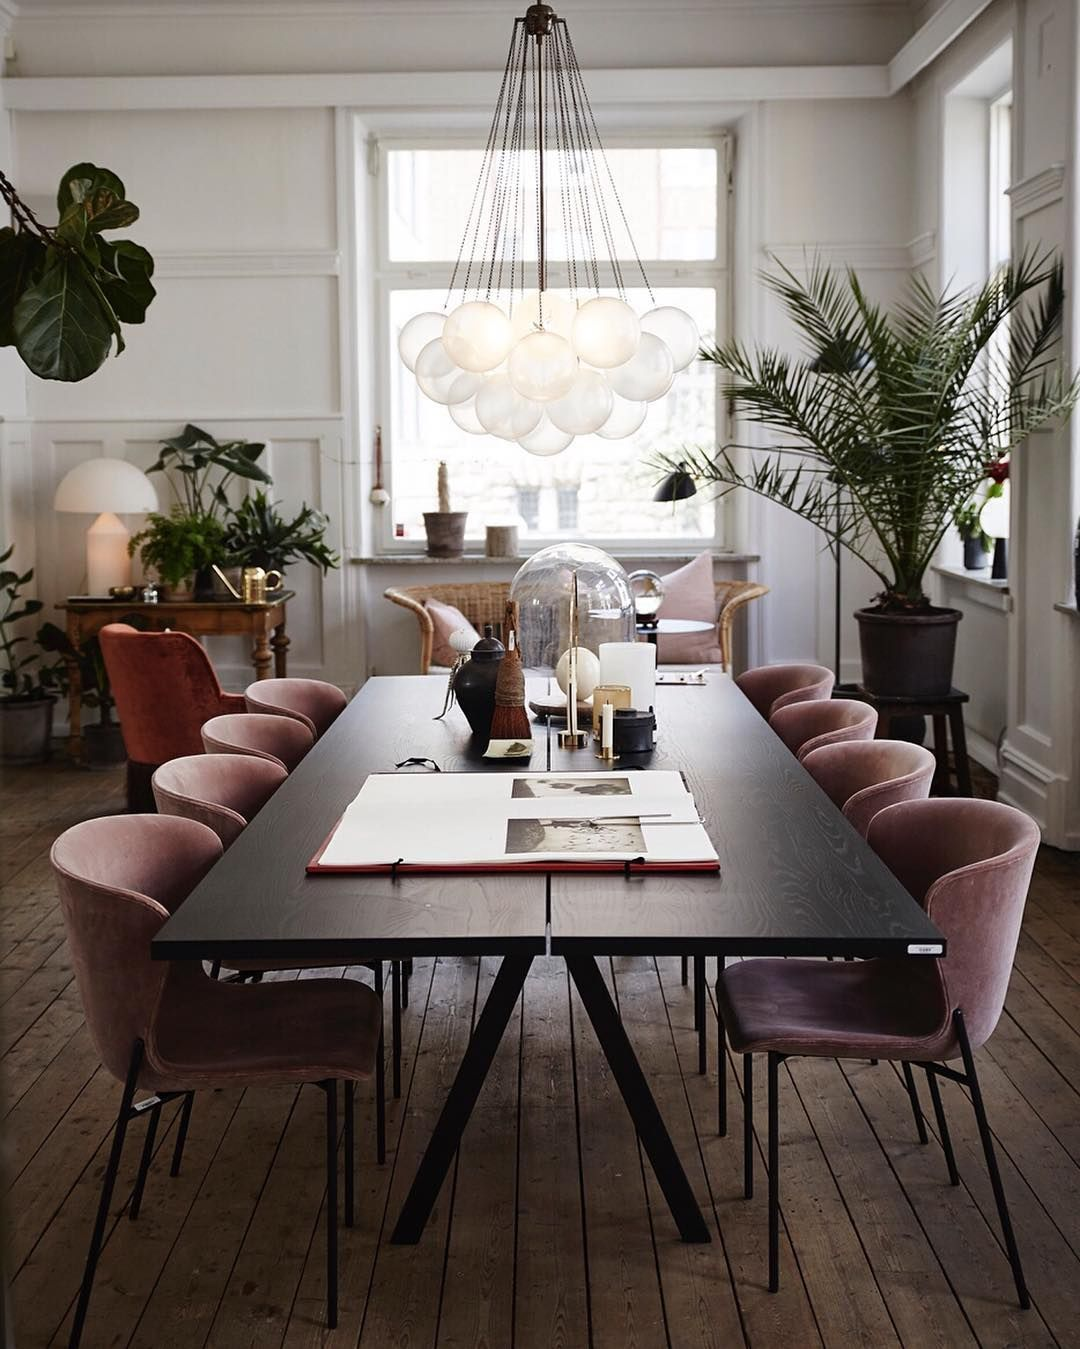 Dining Room Attendant: One Flight Of Stairs And You're There. Artilleriet Studio